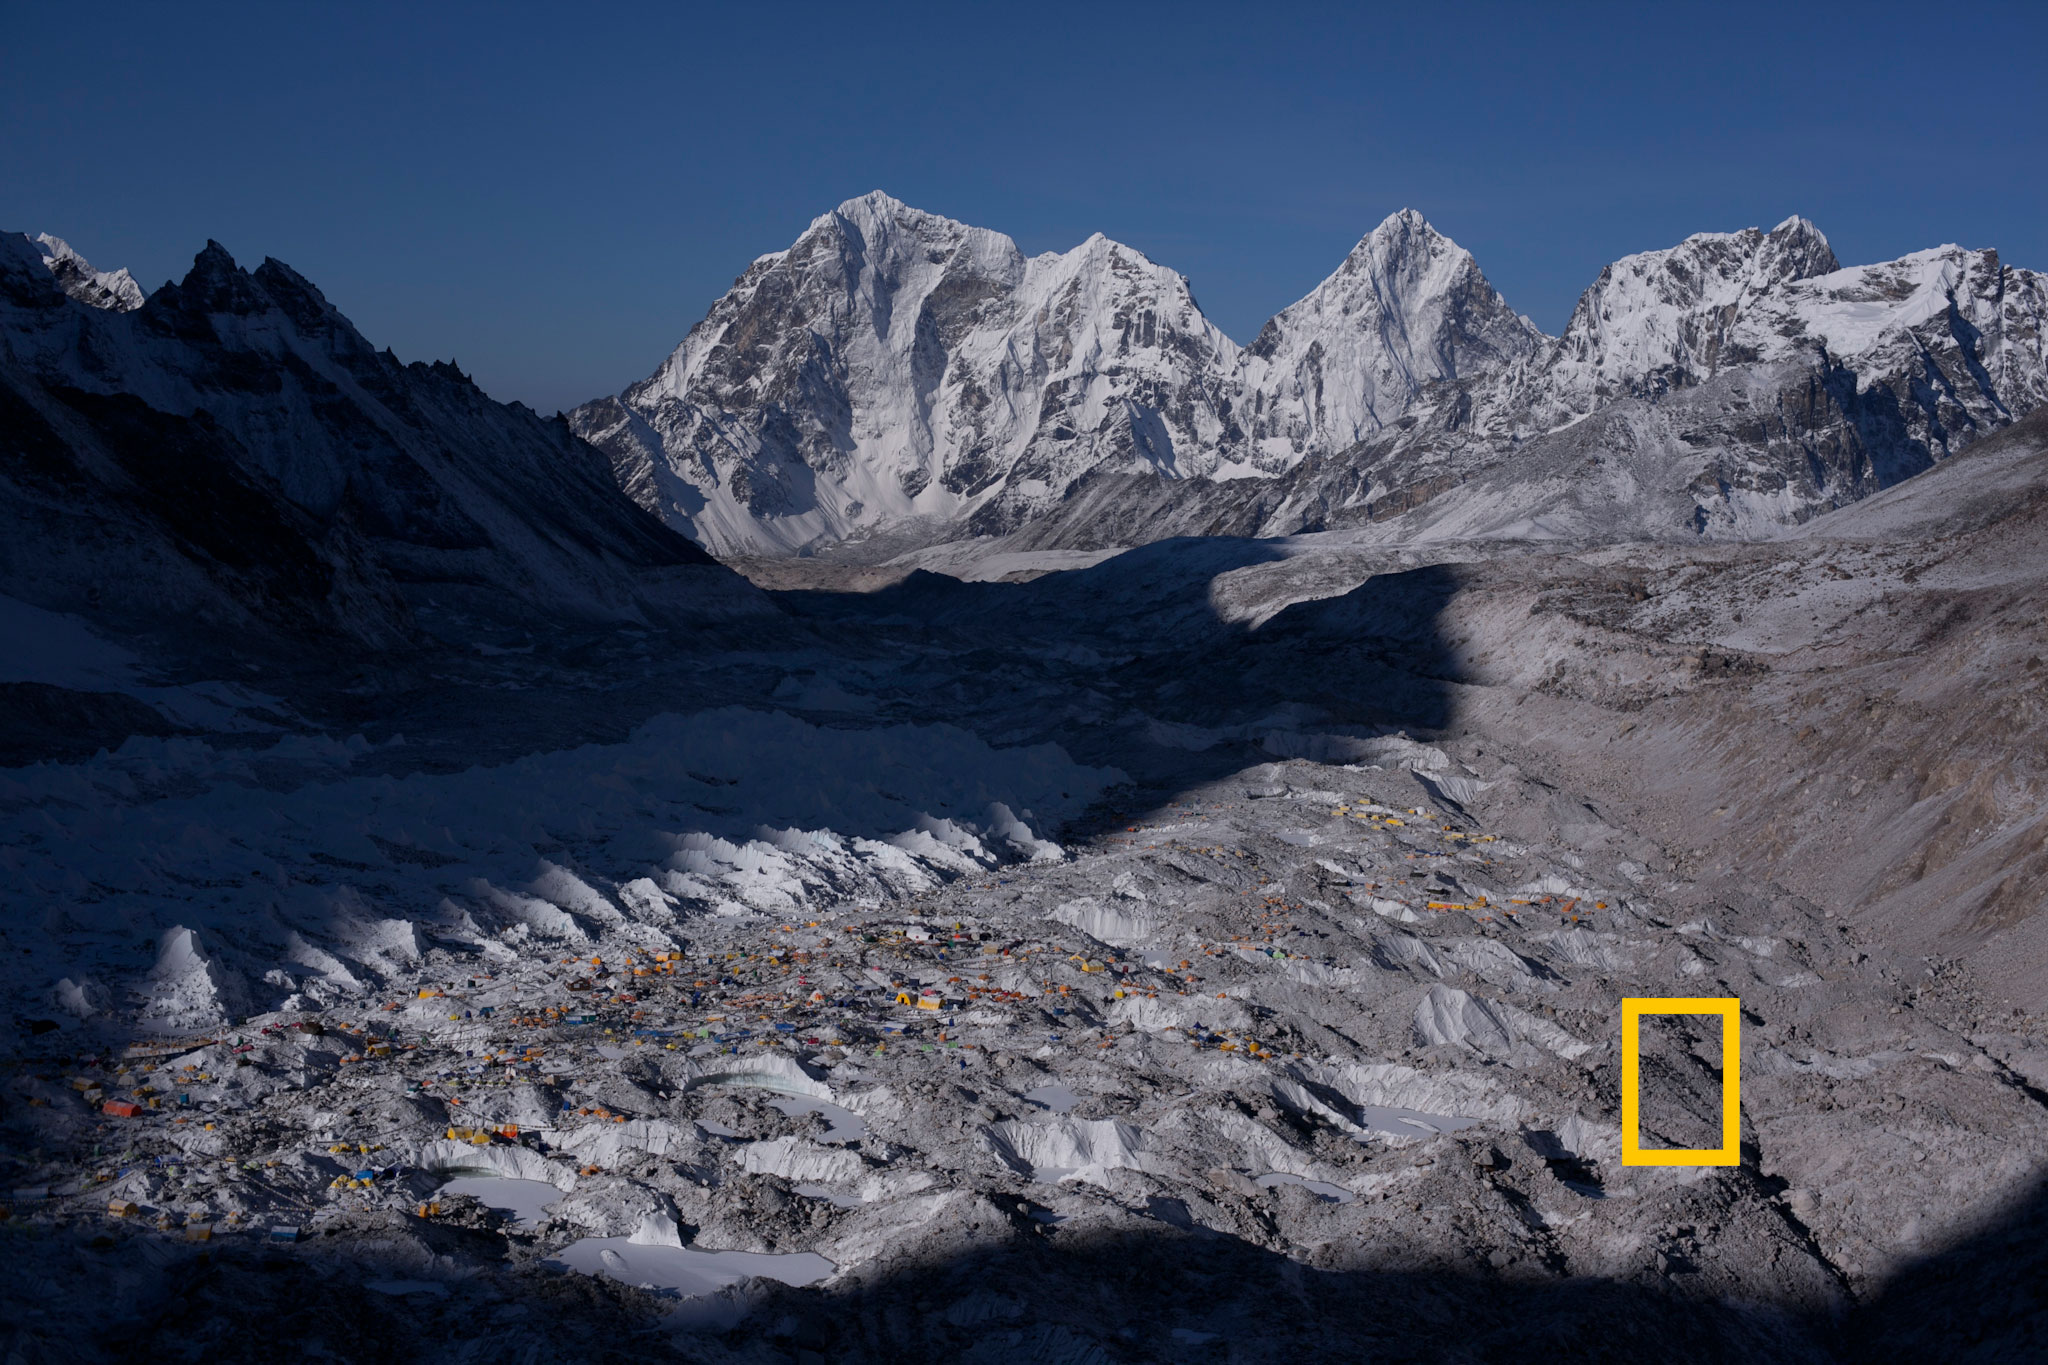 Everest Basecamp at Dawn – National Geographic, June 2013